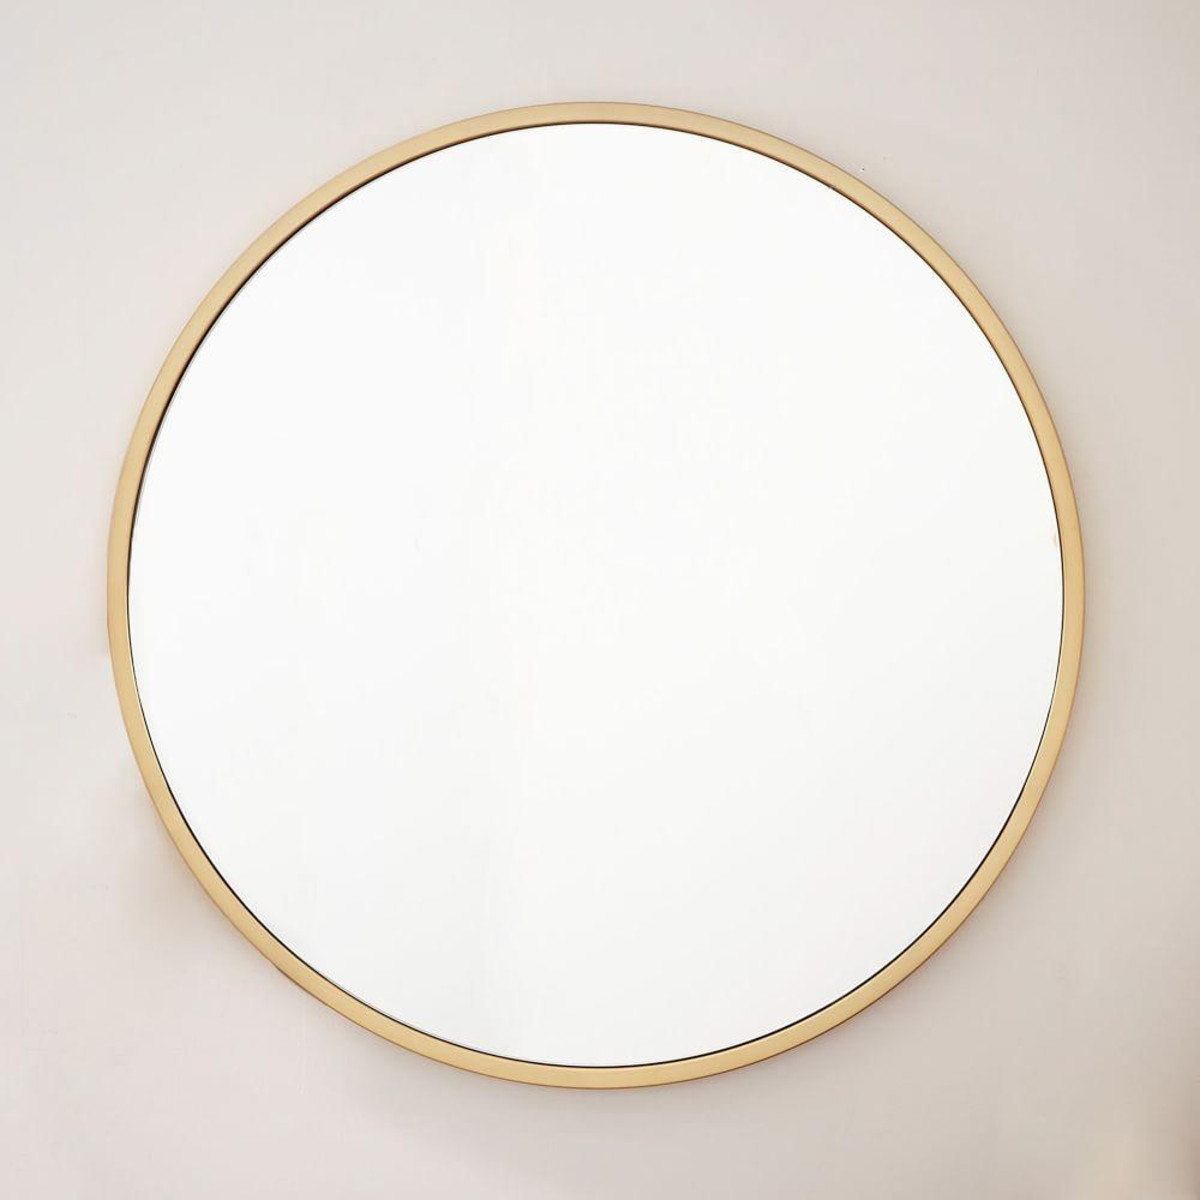 Metal Framed Oversized Round Mirror Antique Brass Bathroom Pertaining To Antique Round Mirrors (View 10 of 15)